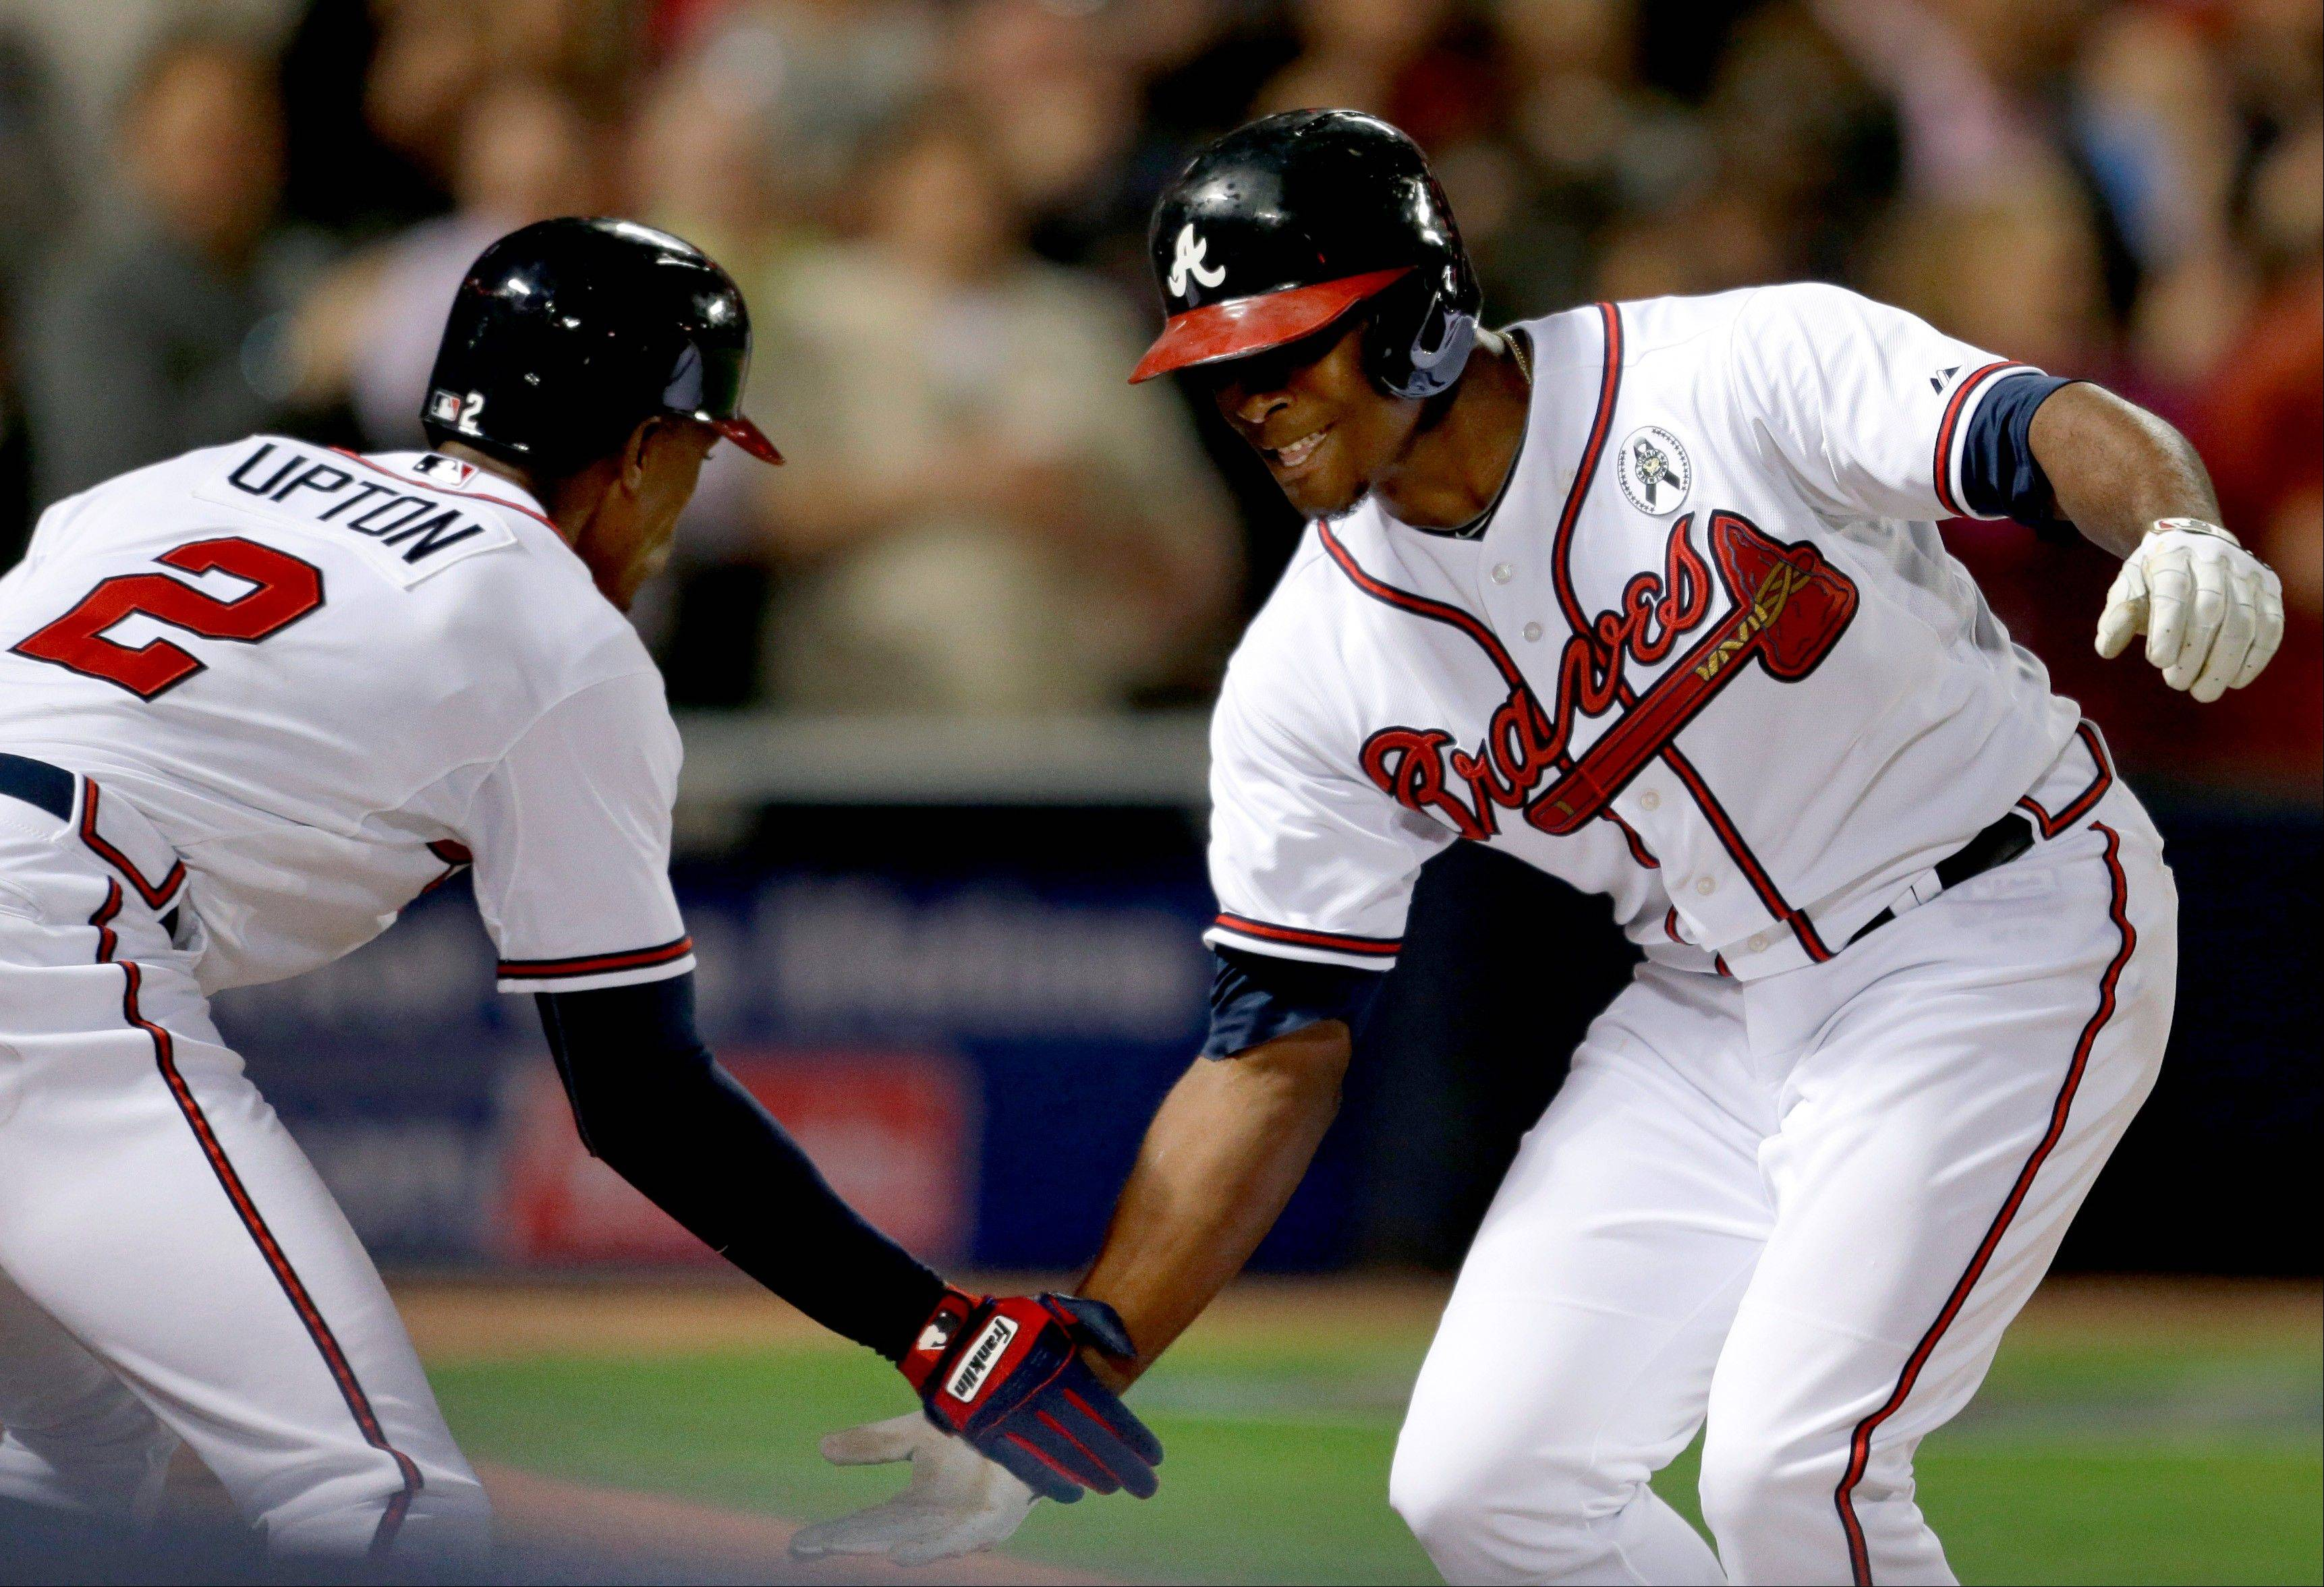 The Braves' Justin Upton, right, high-fives his brother and teammate B.J. Upton after hitting a home run in the fifth inning Monday against the Phillies.